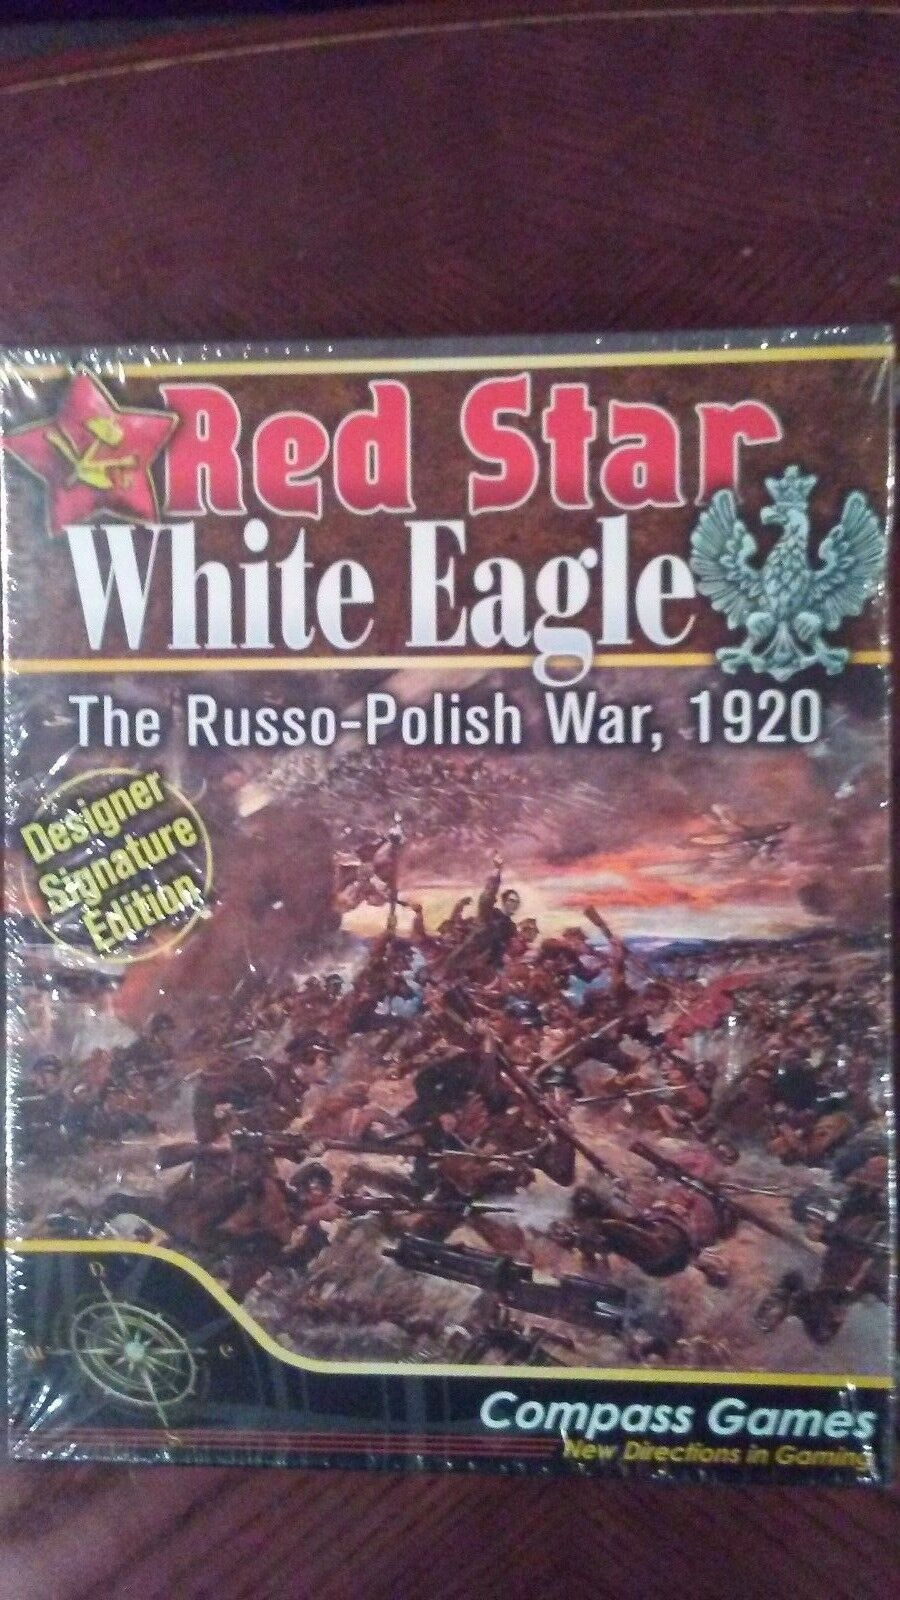 rosso Star bianca Eagle.  The Russo-Polish War 1920.  Sealed.